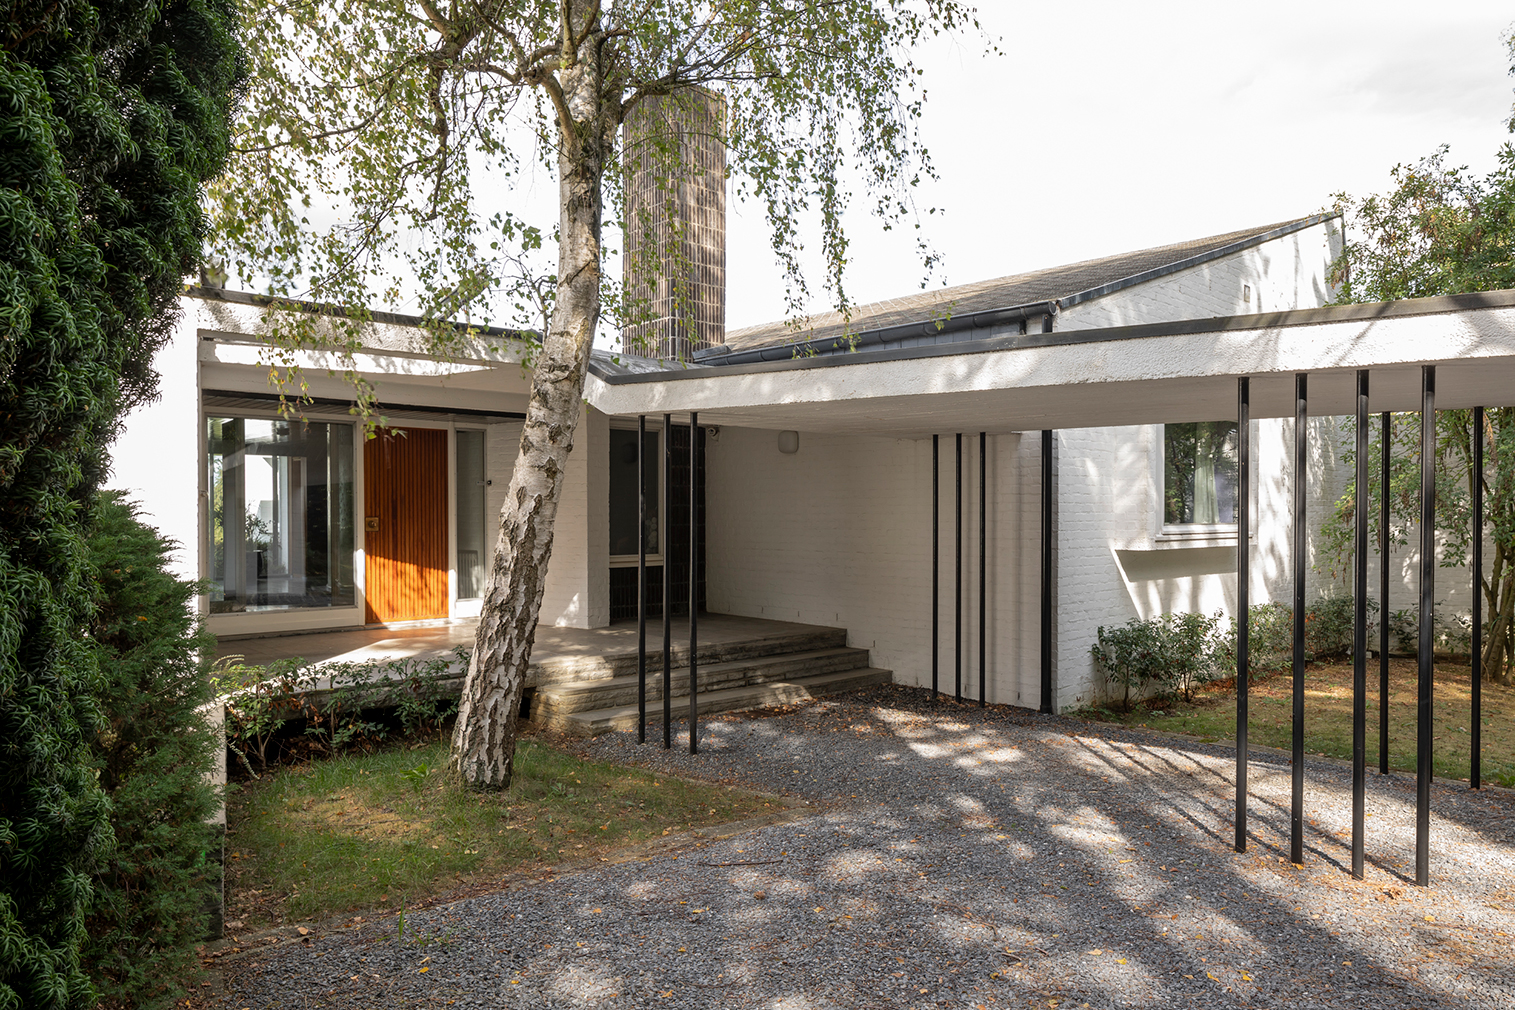 Modernist villa for sale in Brabant, Belgium